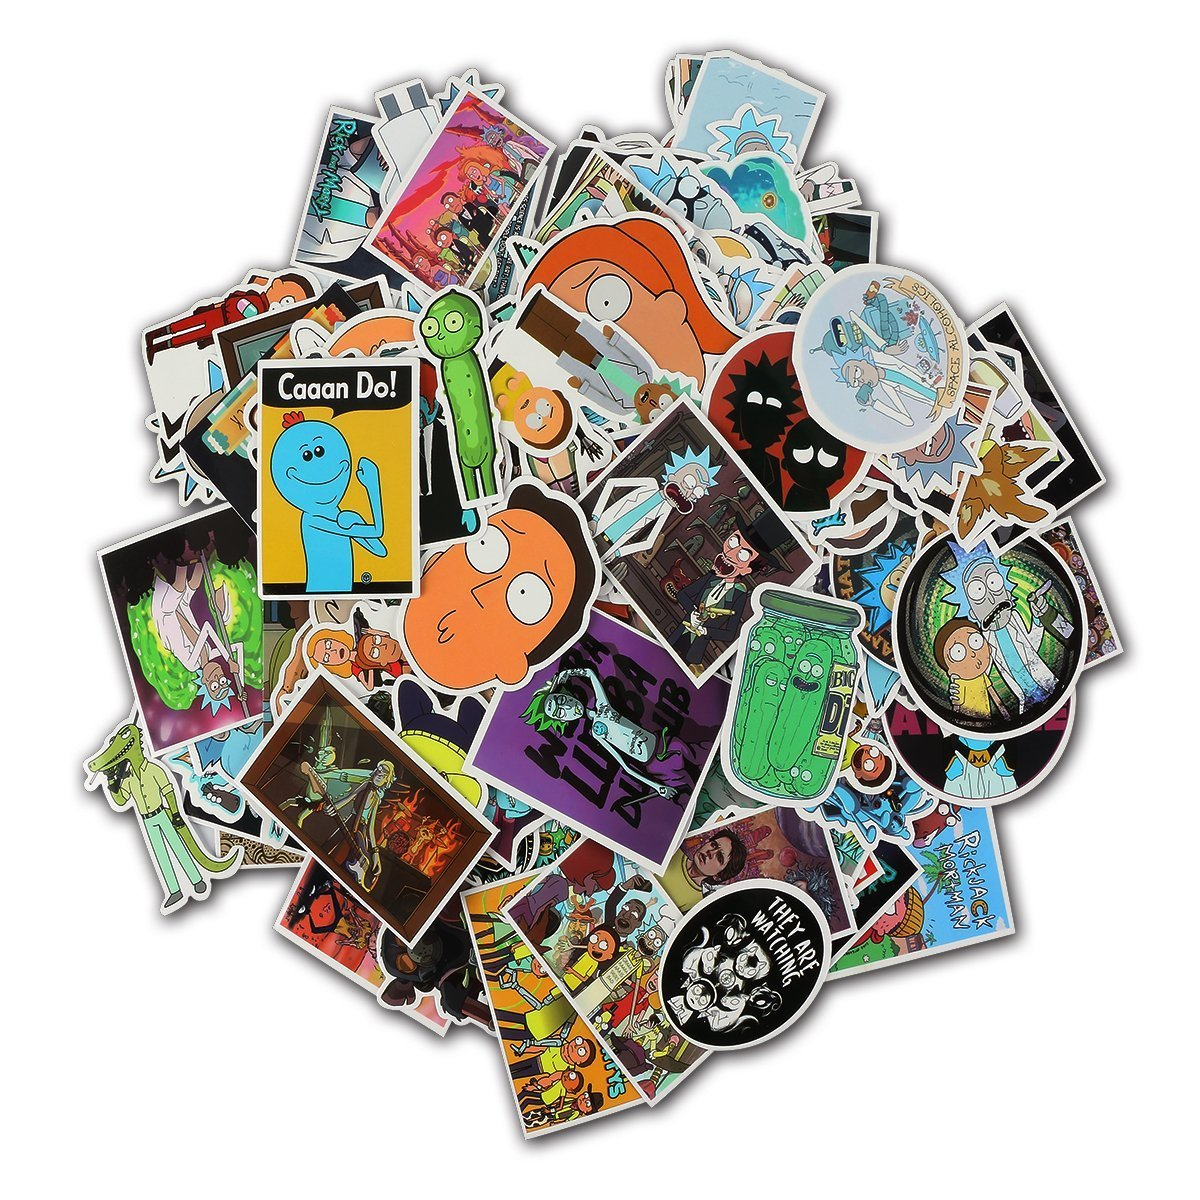 Rick And Morty stickers-135 Pcs Xawy Laptop Stickers Motorcycle/ Bicycle/ Skateboard Stickers, Luggage Decal Car Sticker Pack